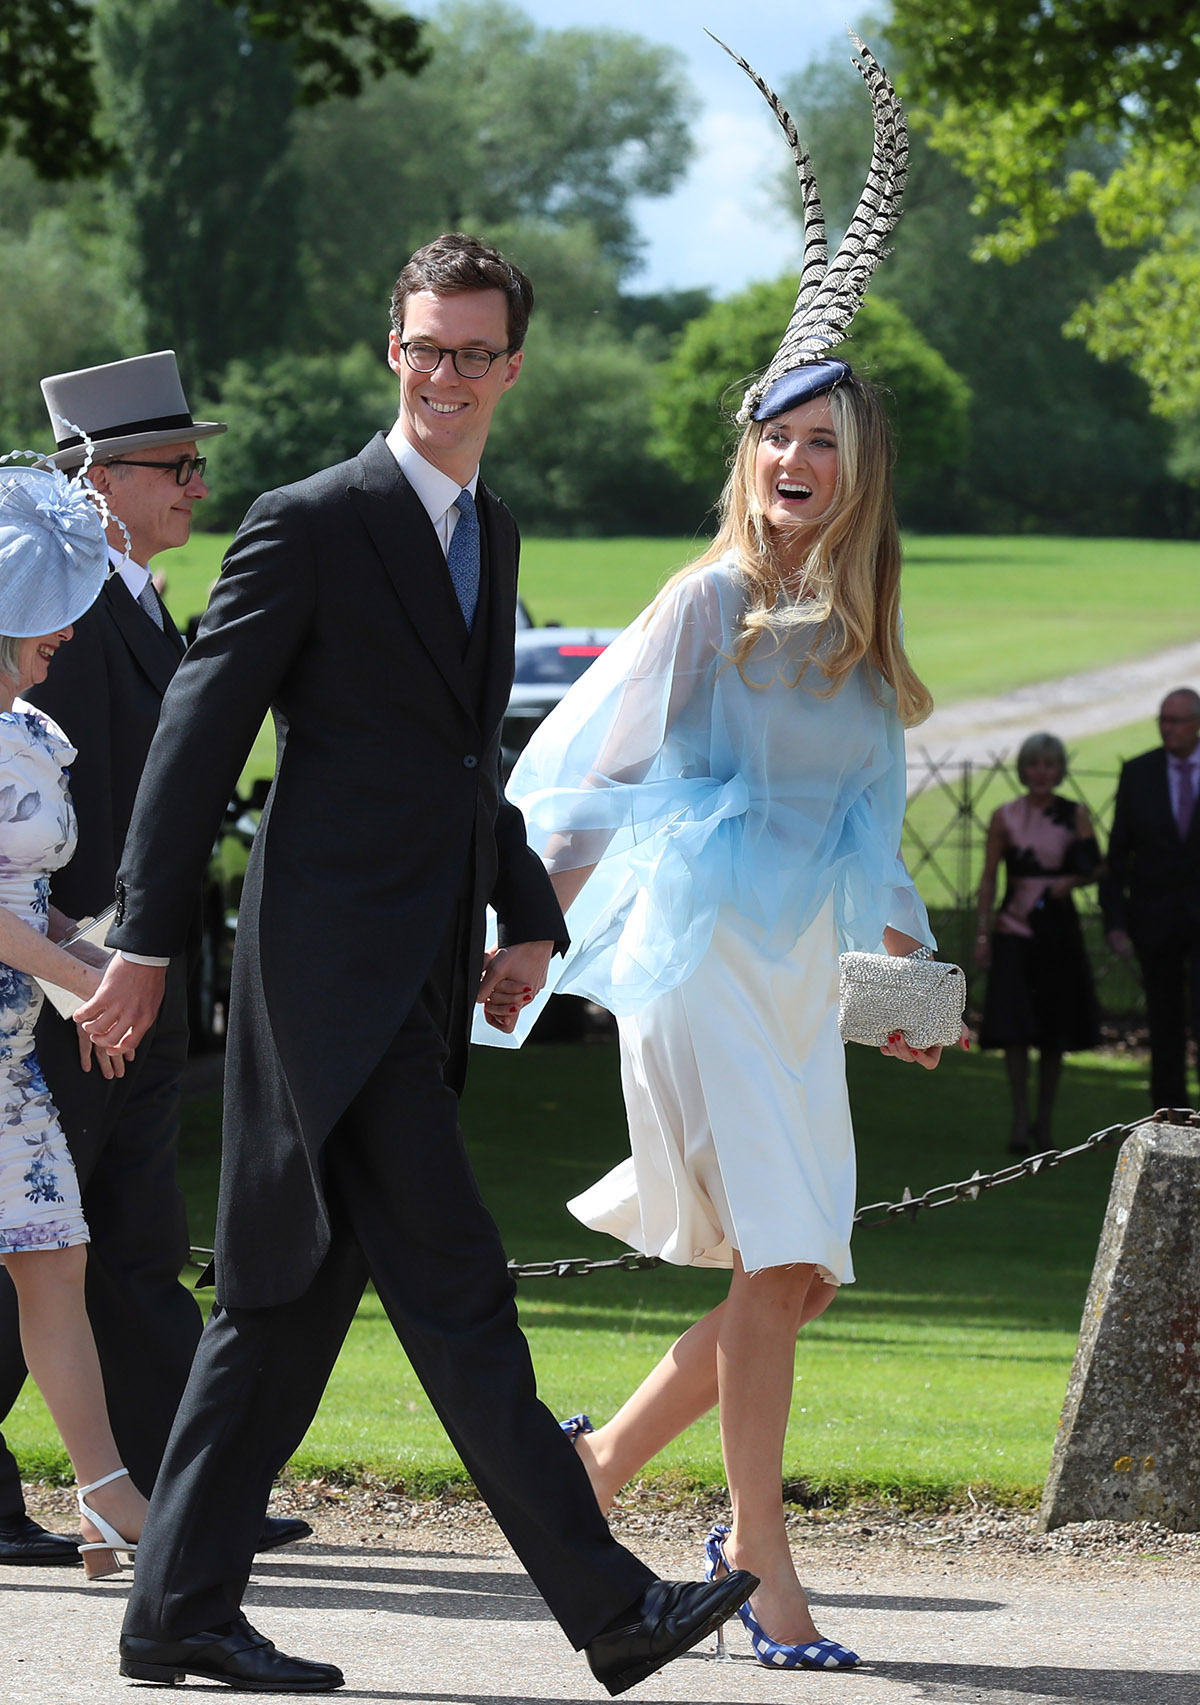 The Best Fascinators at Pippa Middleton's Wedding LEAD